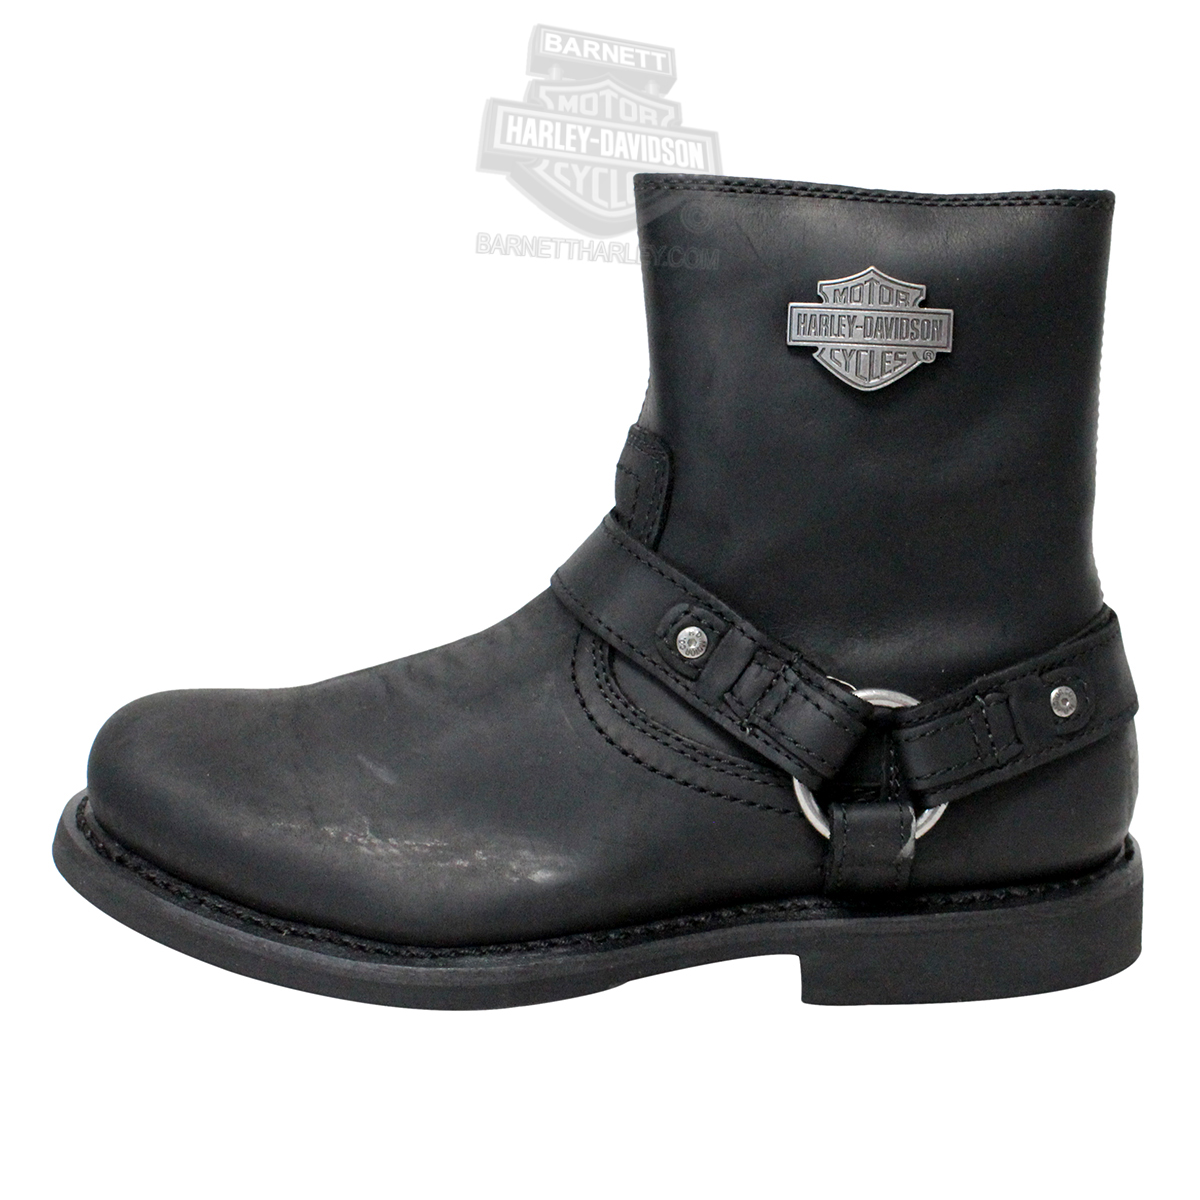 c91af9e236bb 95262 - Harley-Davidson® Mens Scout Black Low Cut Boot - Barnett ...